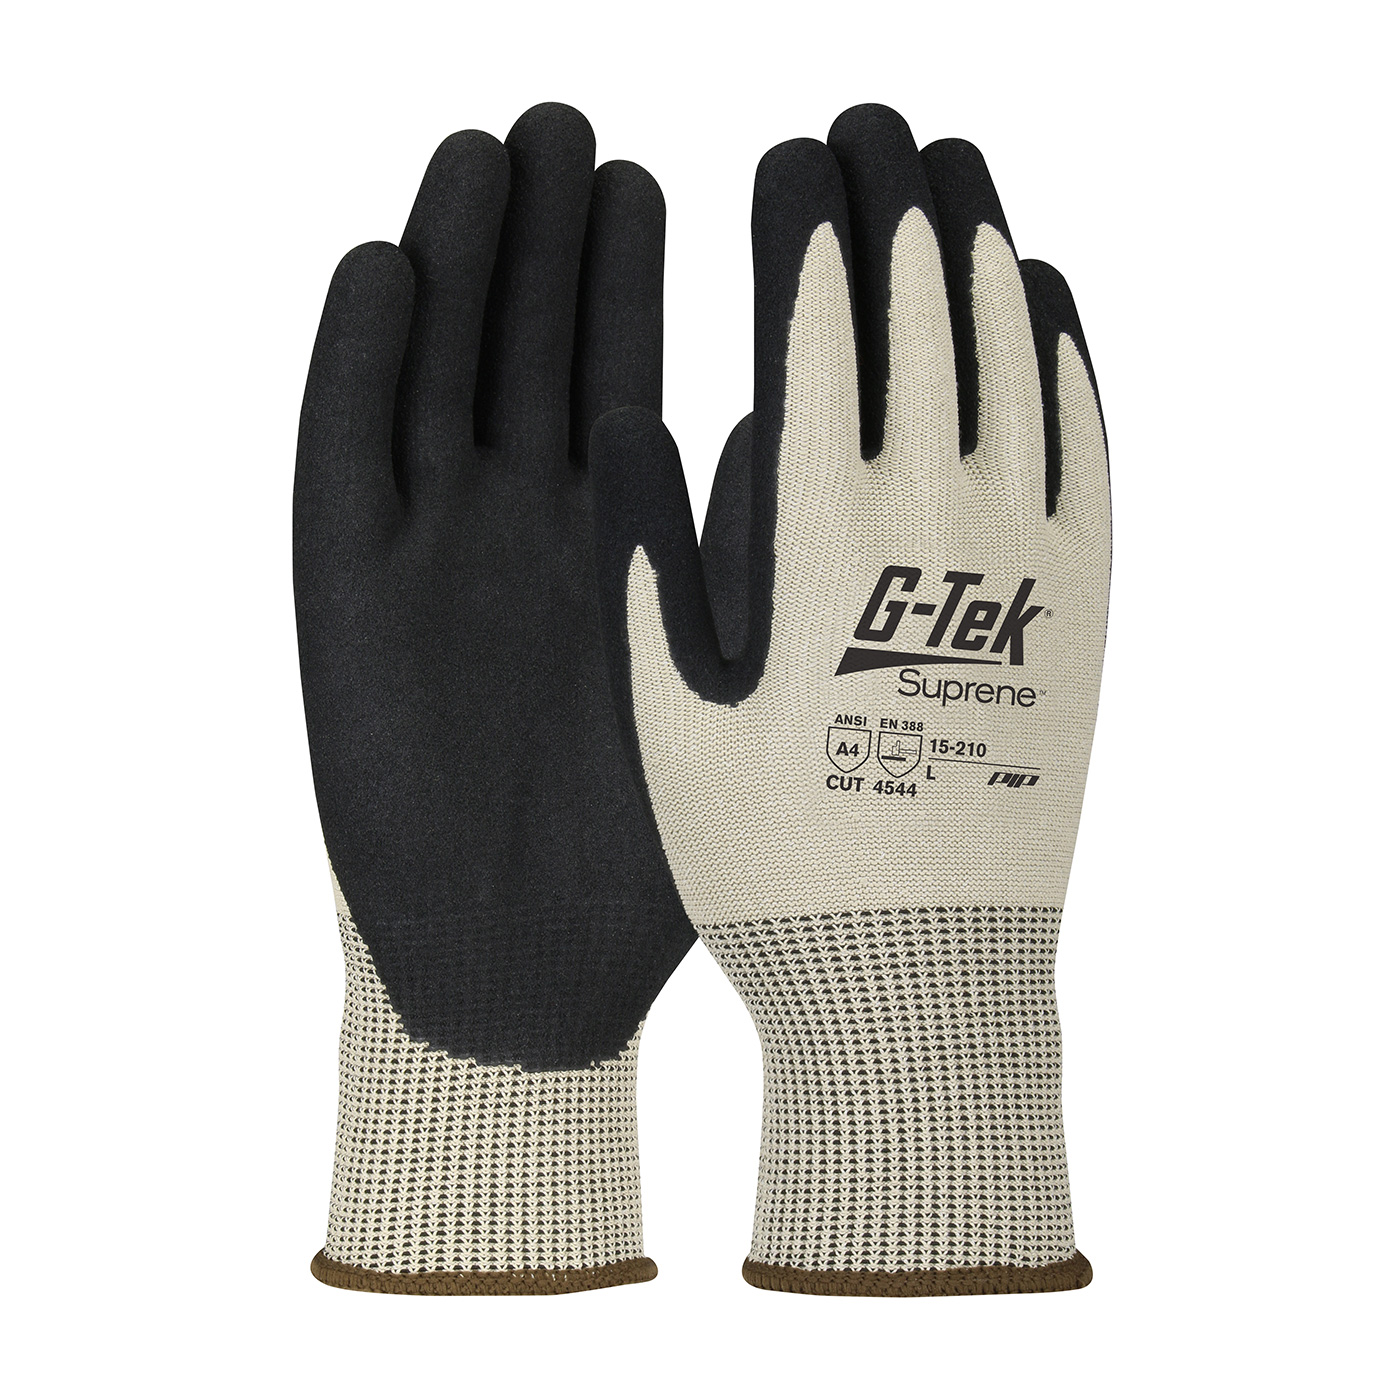 15-210 PIP® G-Tek® Suprene™ Palm and Fingers Nitrile Coated MicroSurface seamless knit gloves